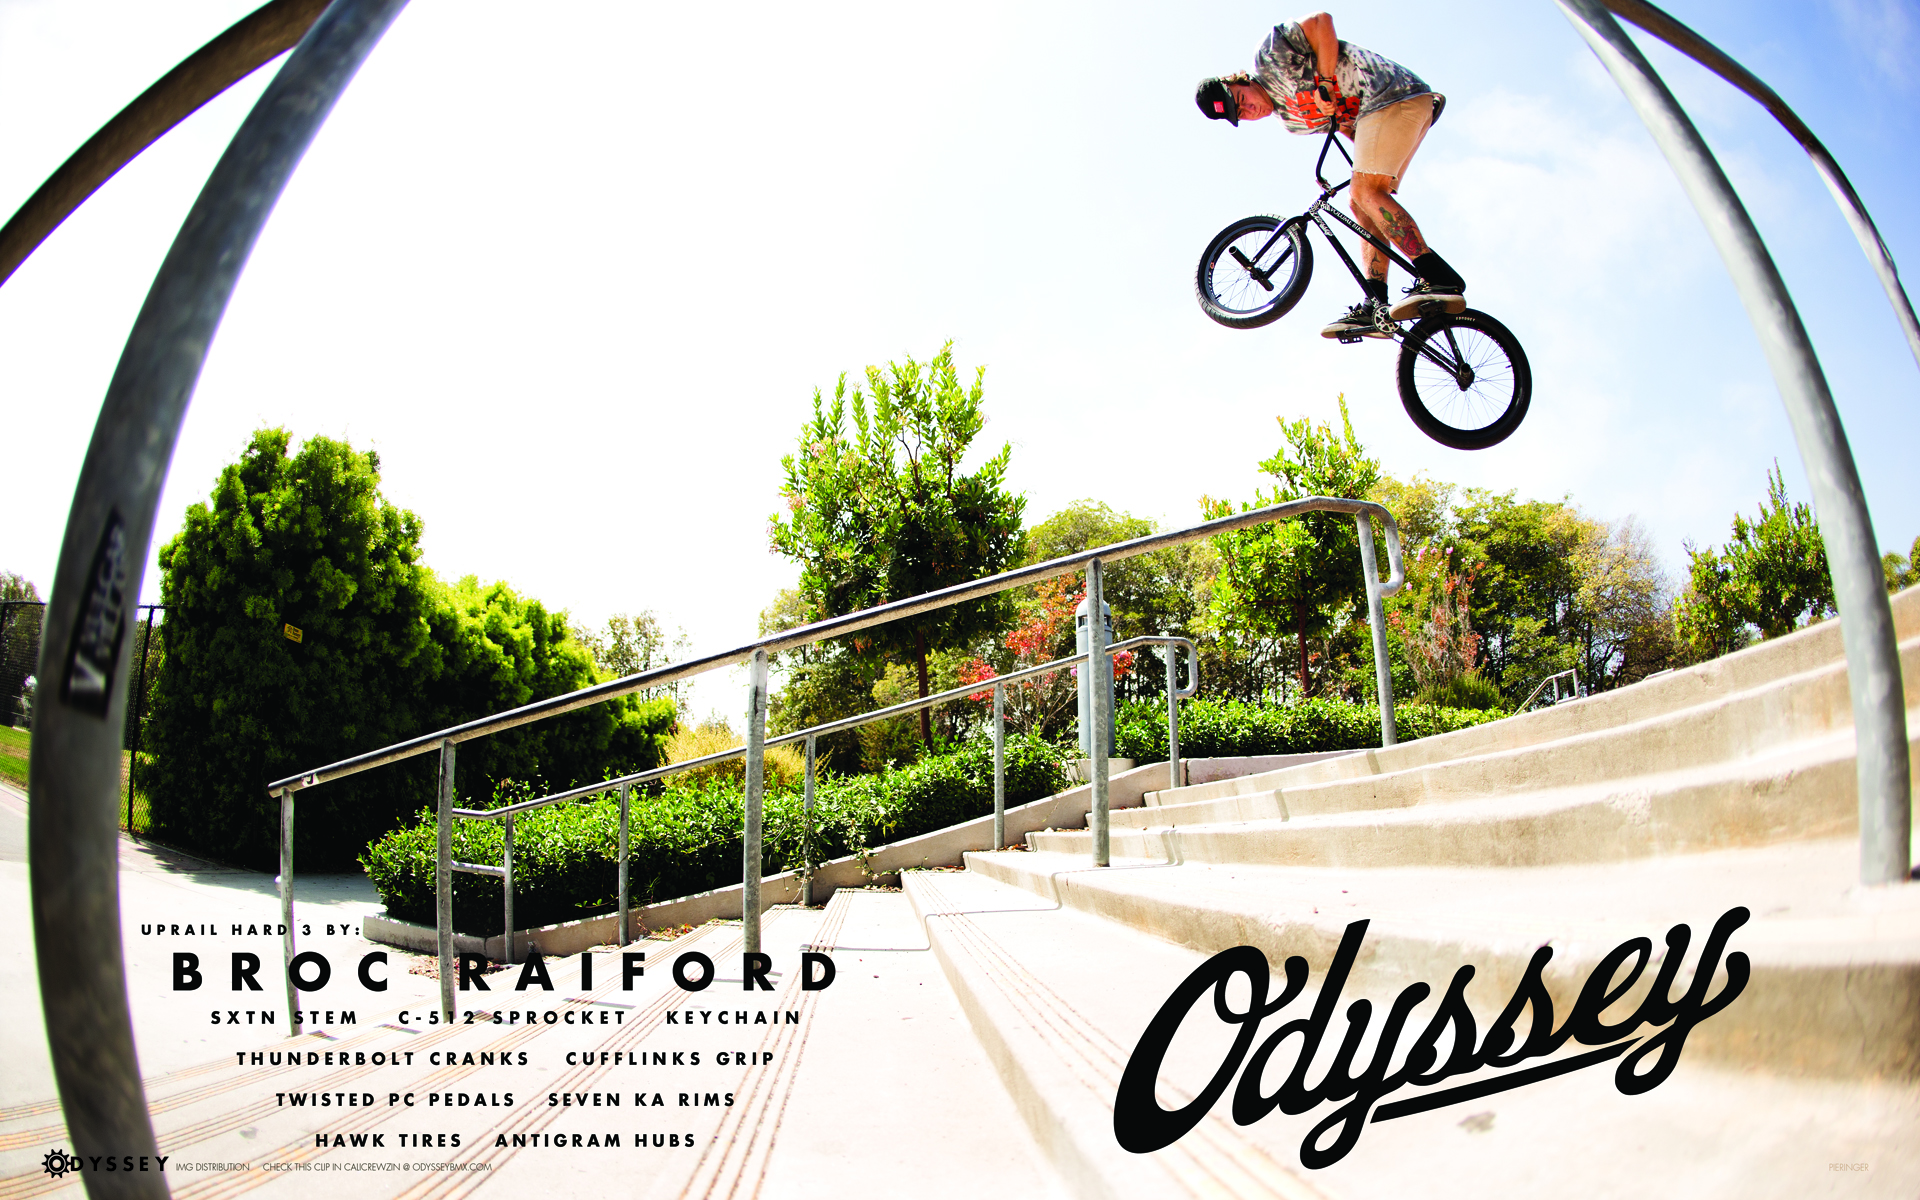 Broc Raiford Print Ad/Wallpaper - The Come Up BMX